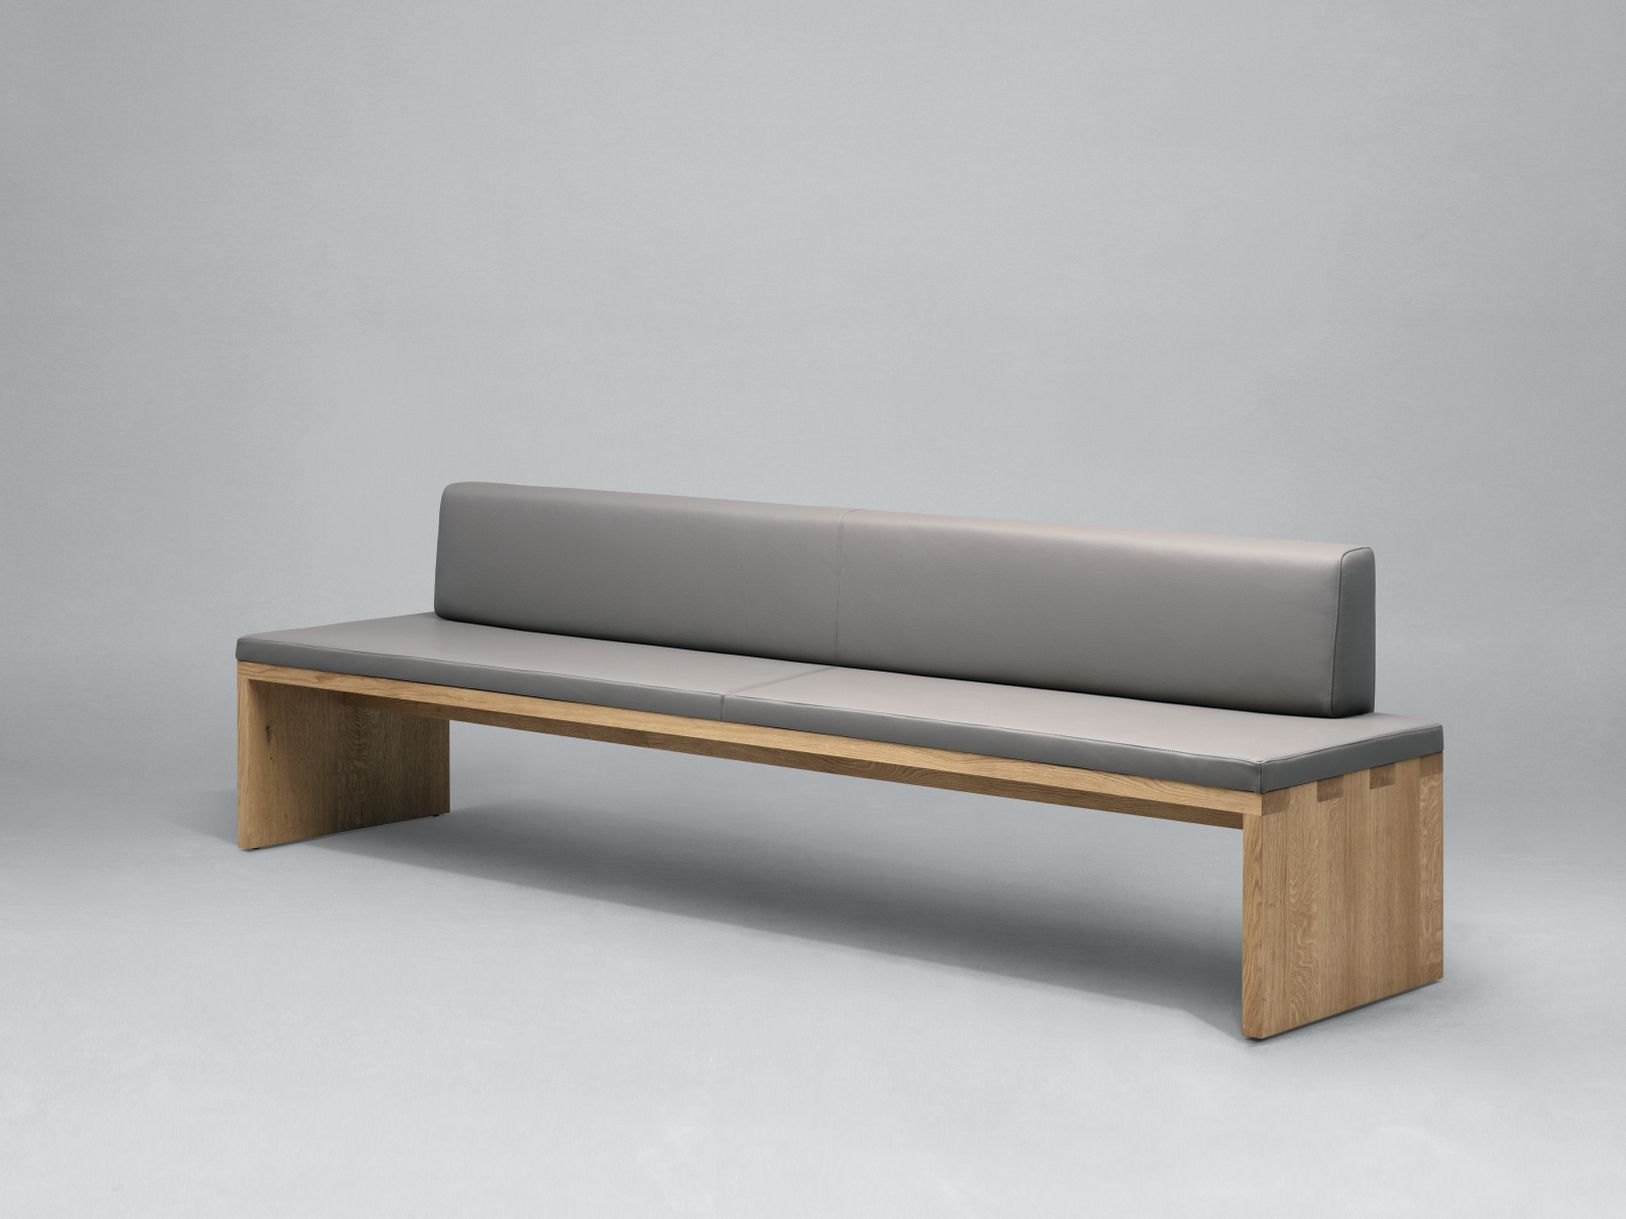 Download The Catalogue And Request Prices Of Sc02 Upholstered Bench By Janua Upholstered W Upholstered Dining Bench Dining Bench With Back Upholstered Bench